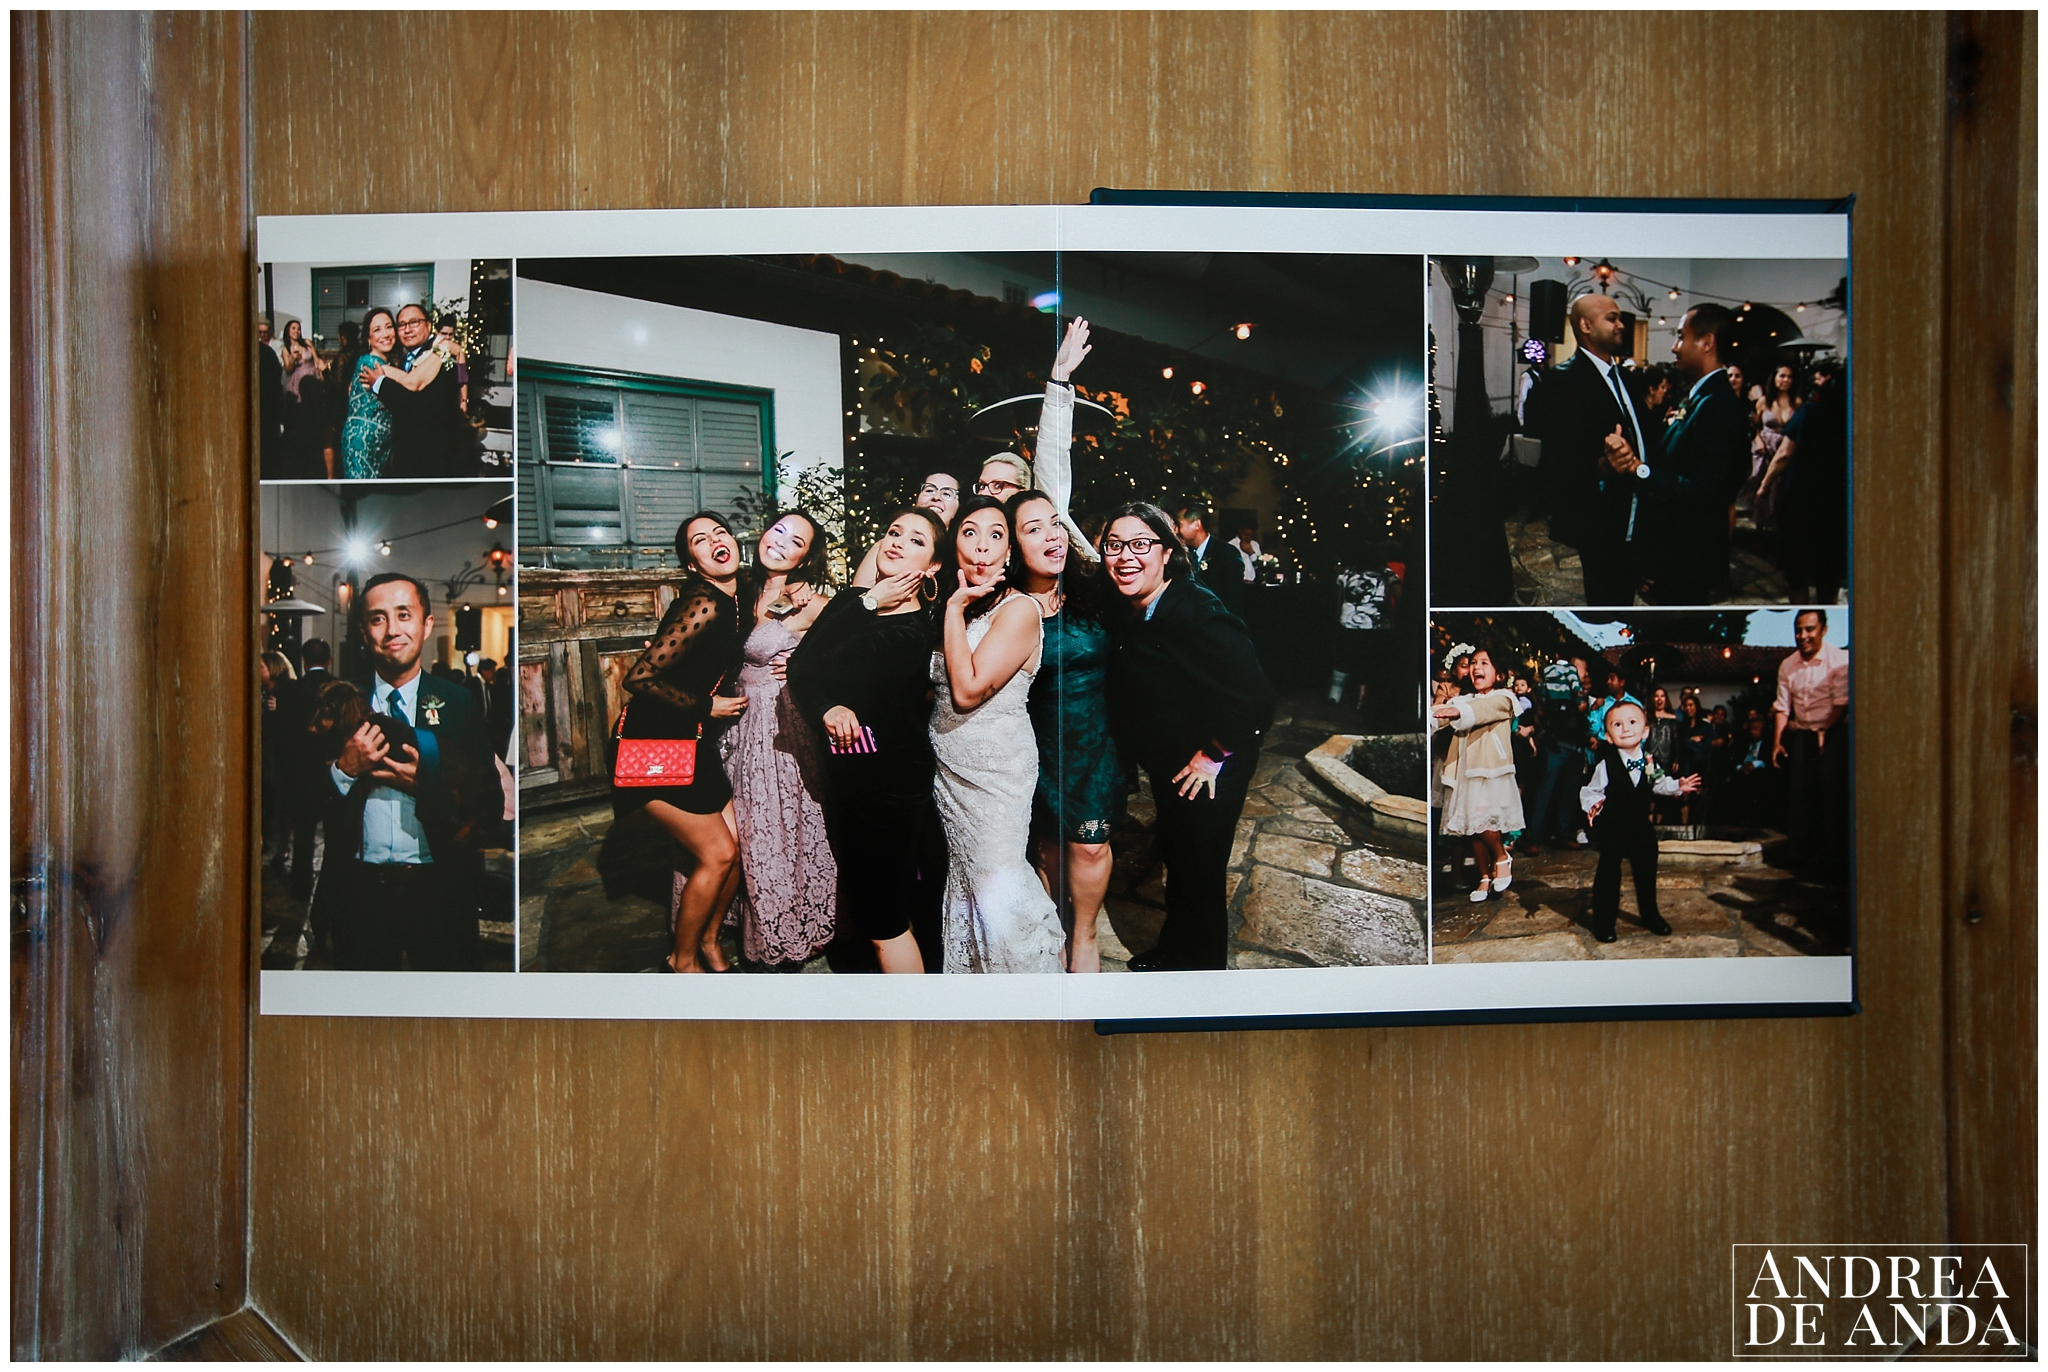 Andrea de Anda Photography_Wedding Album_0010.jpg